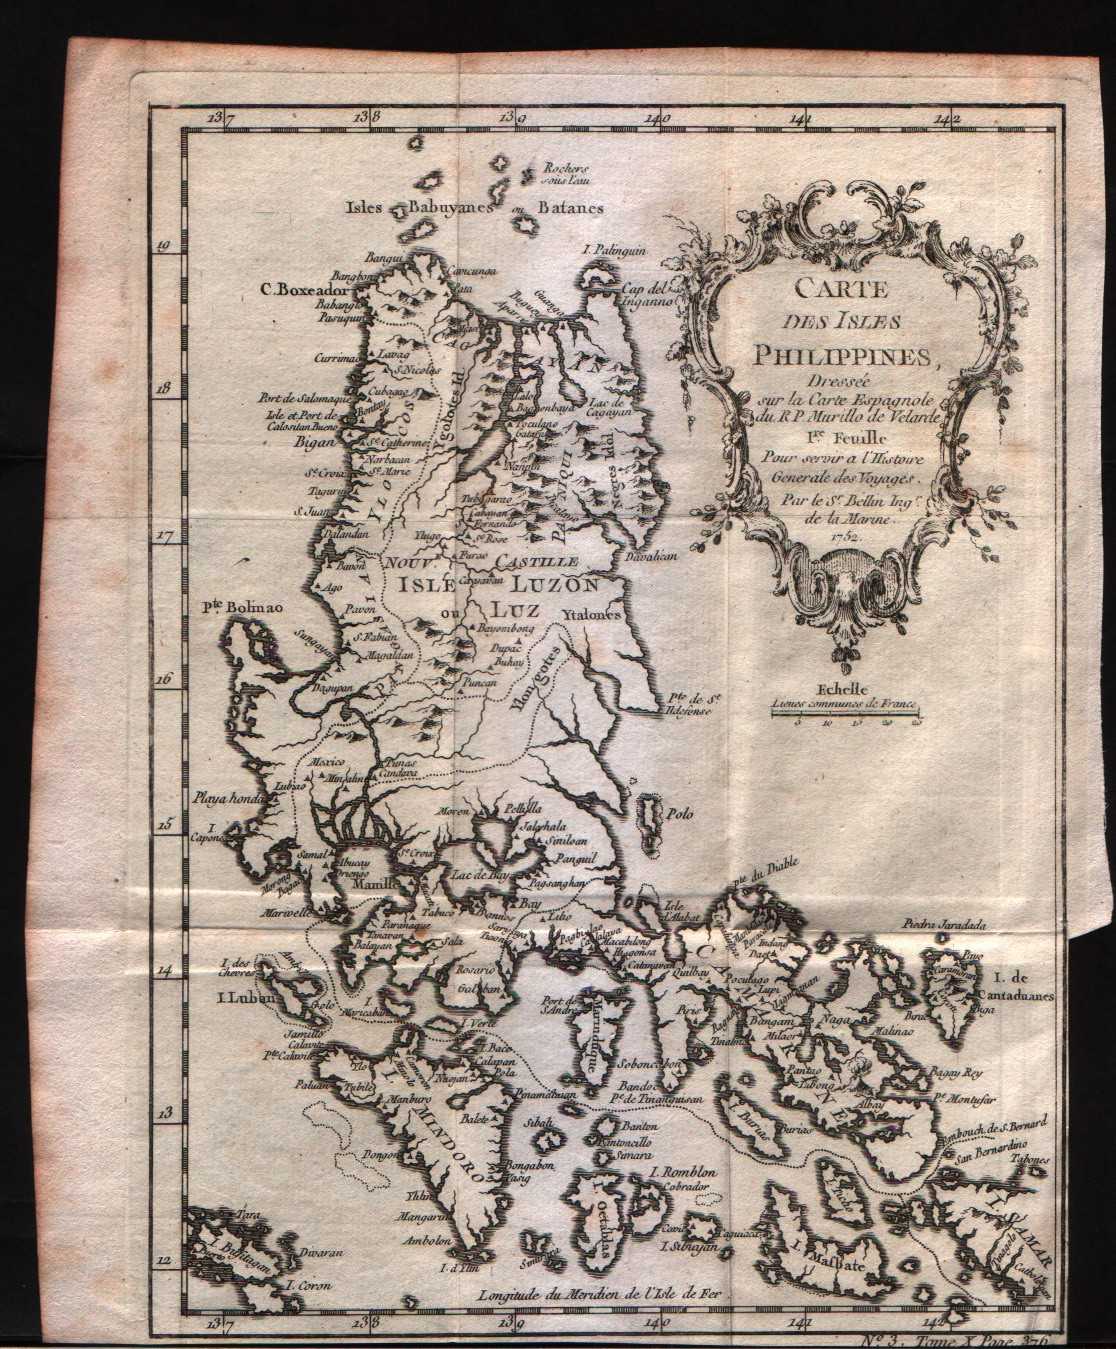 Carte des Isles Philippines 1Feuille